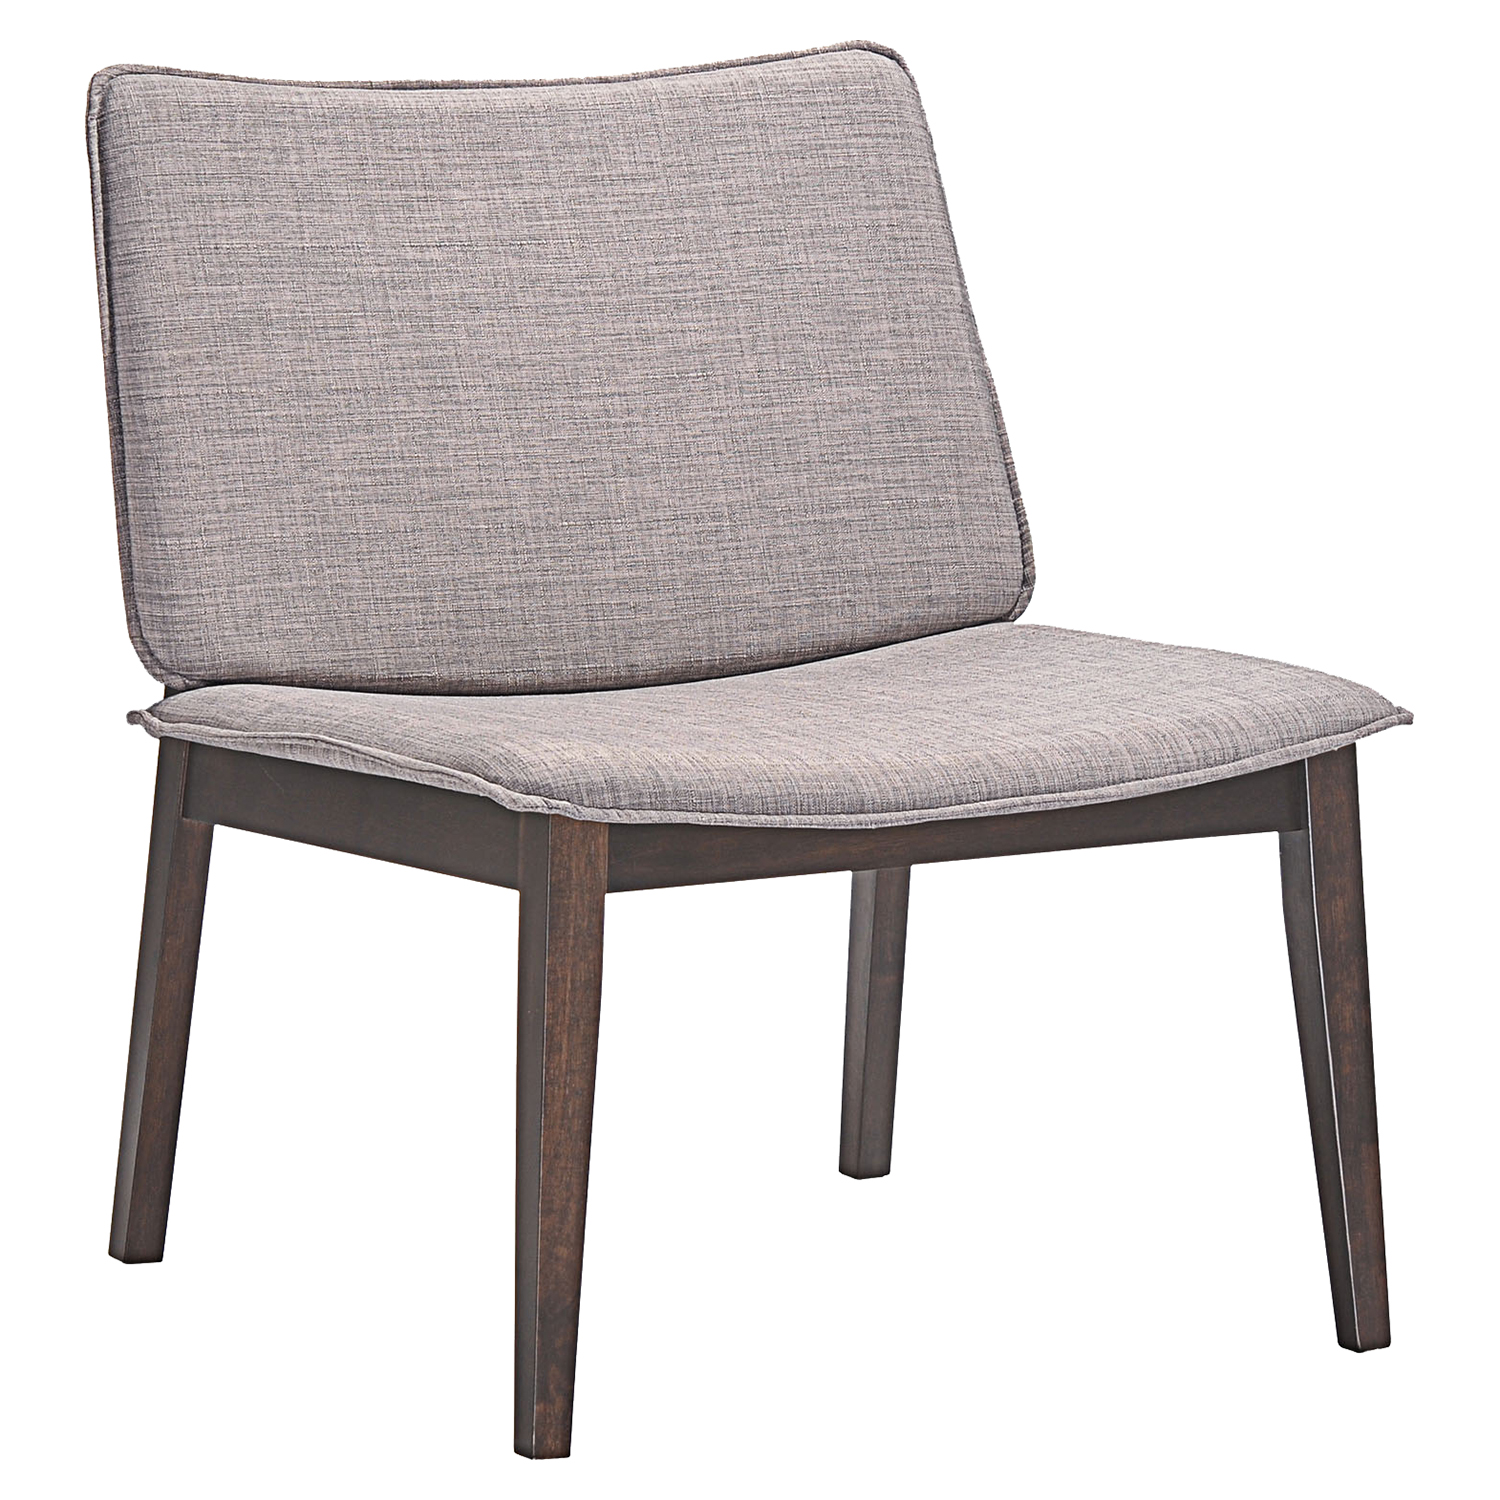 Evade Upholstery Lounge Chair - Walnut, Gray (Set of 2) - EEI-2025-WAL-GRY-SET